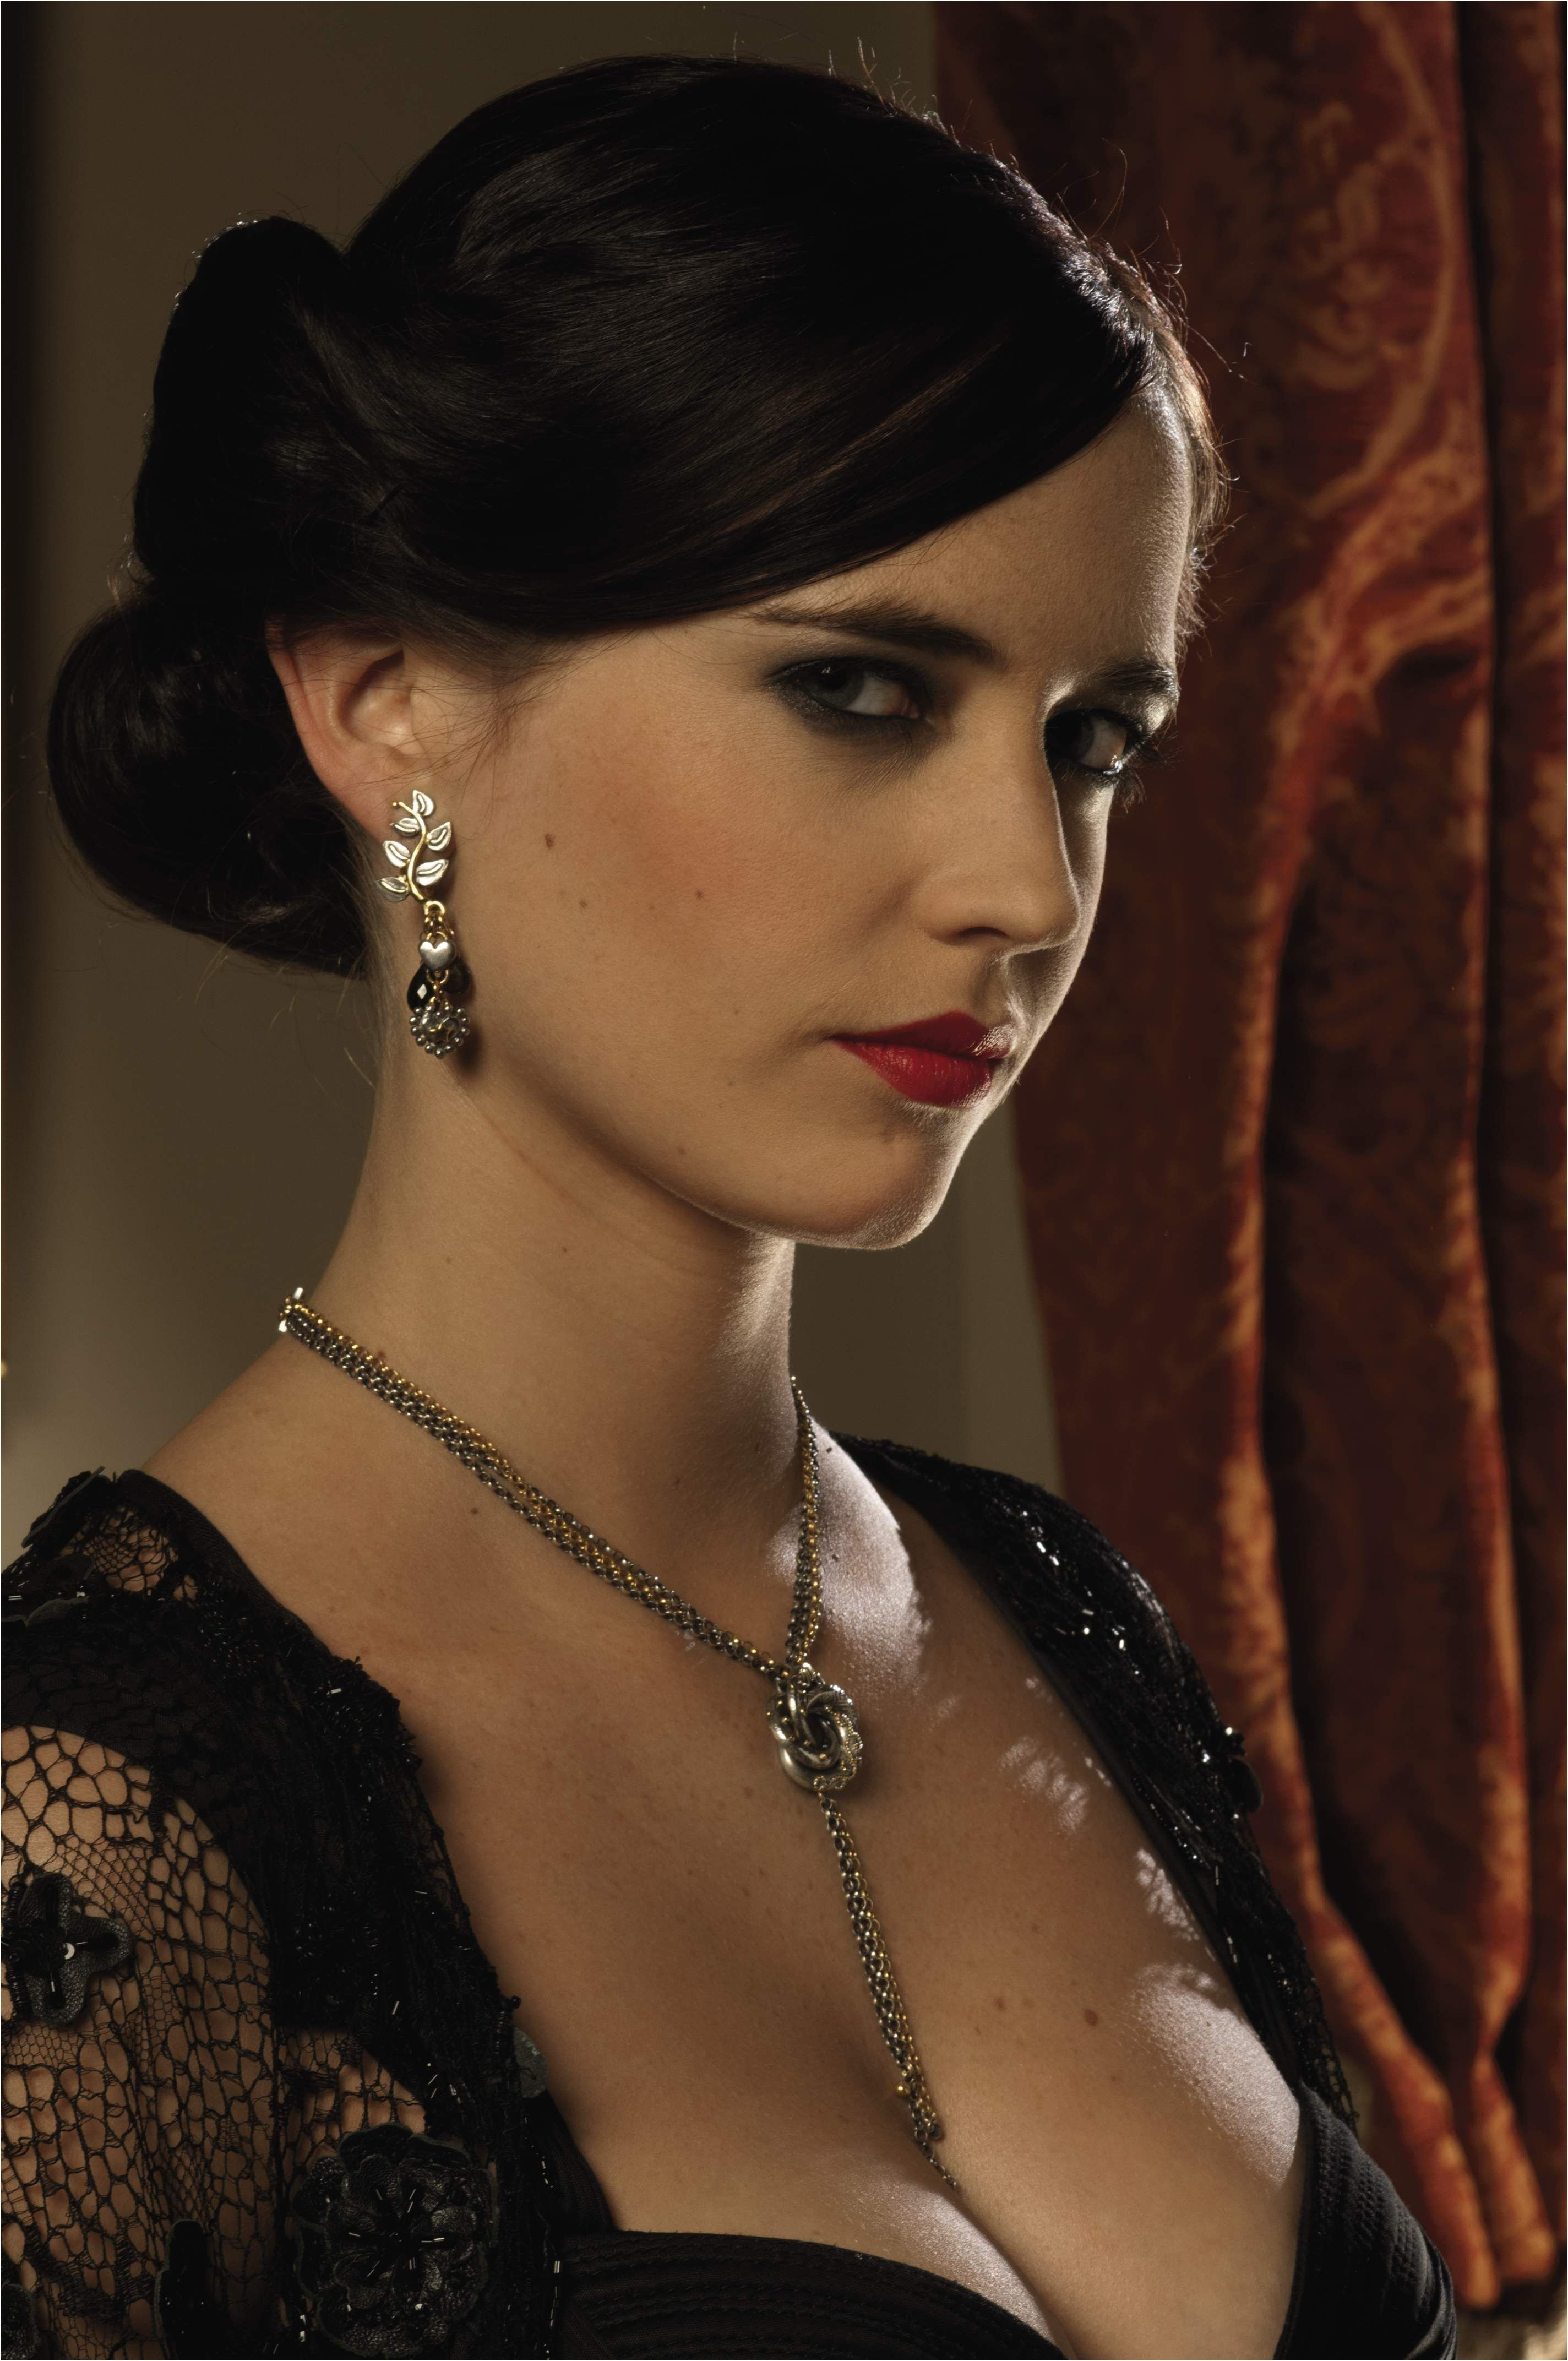 An Algerian Love knot necklace designed by Lindy Hemming and Sophie Harley worn by Eva Green as Vesper Lynd throughout Casino Royale